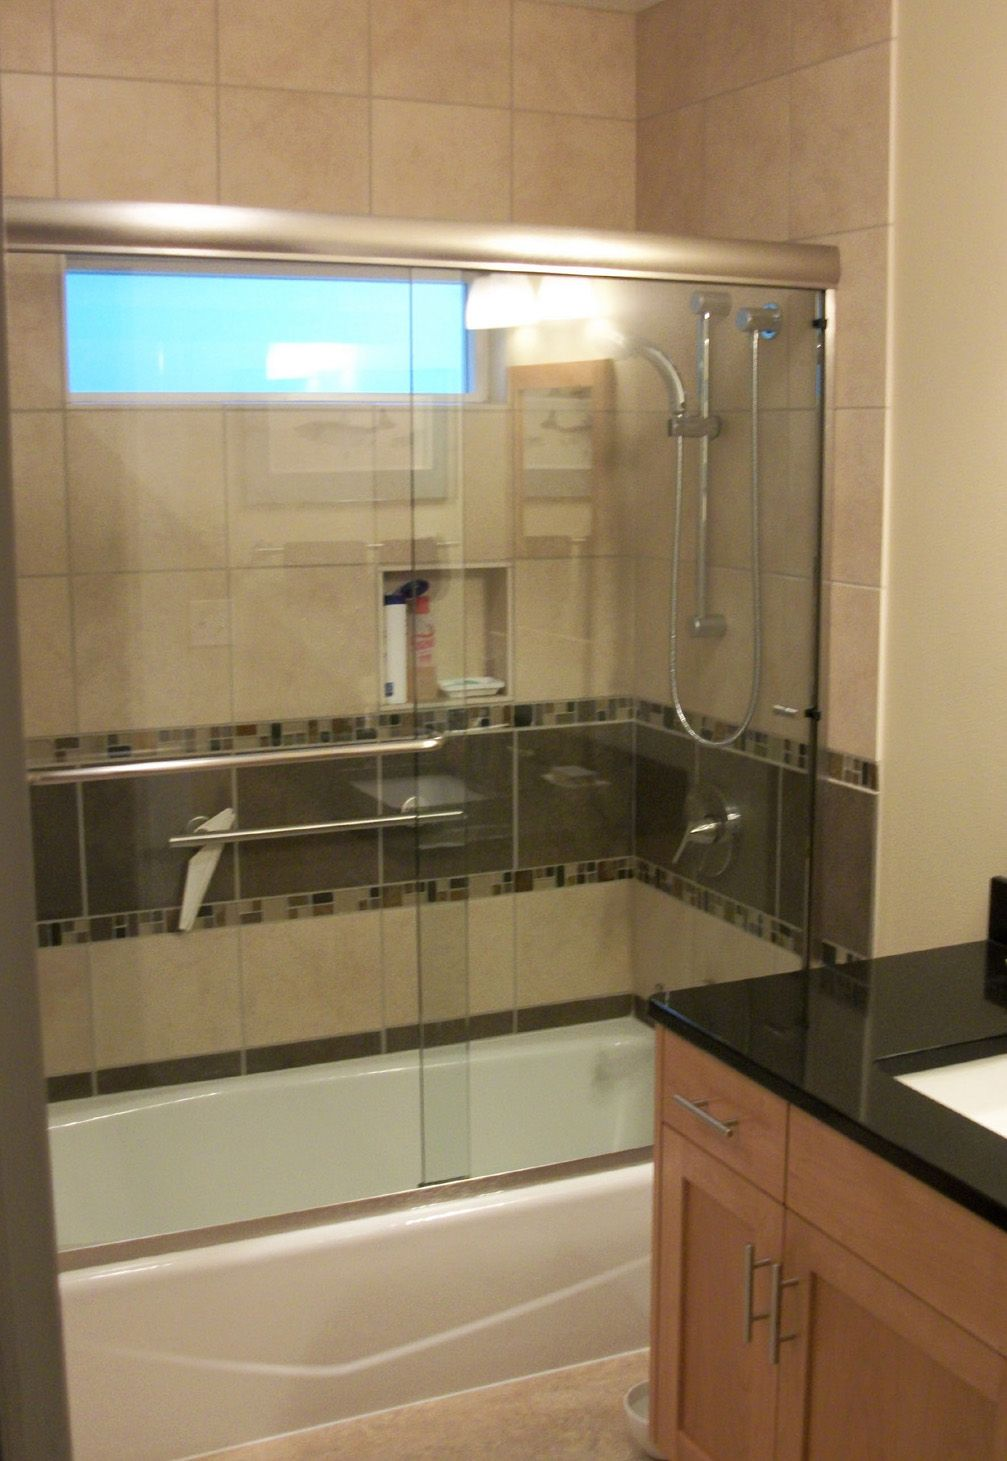 Bathroom Remodel Glass Tile remodeling a small bathroom for | small bathroom tiles, shower